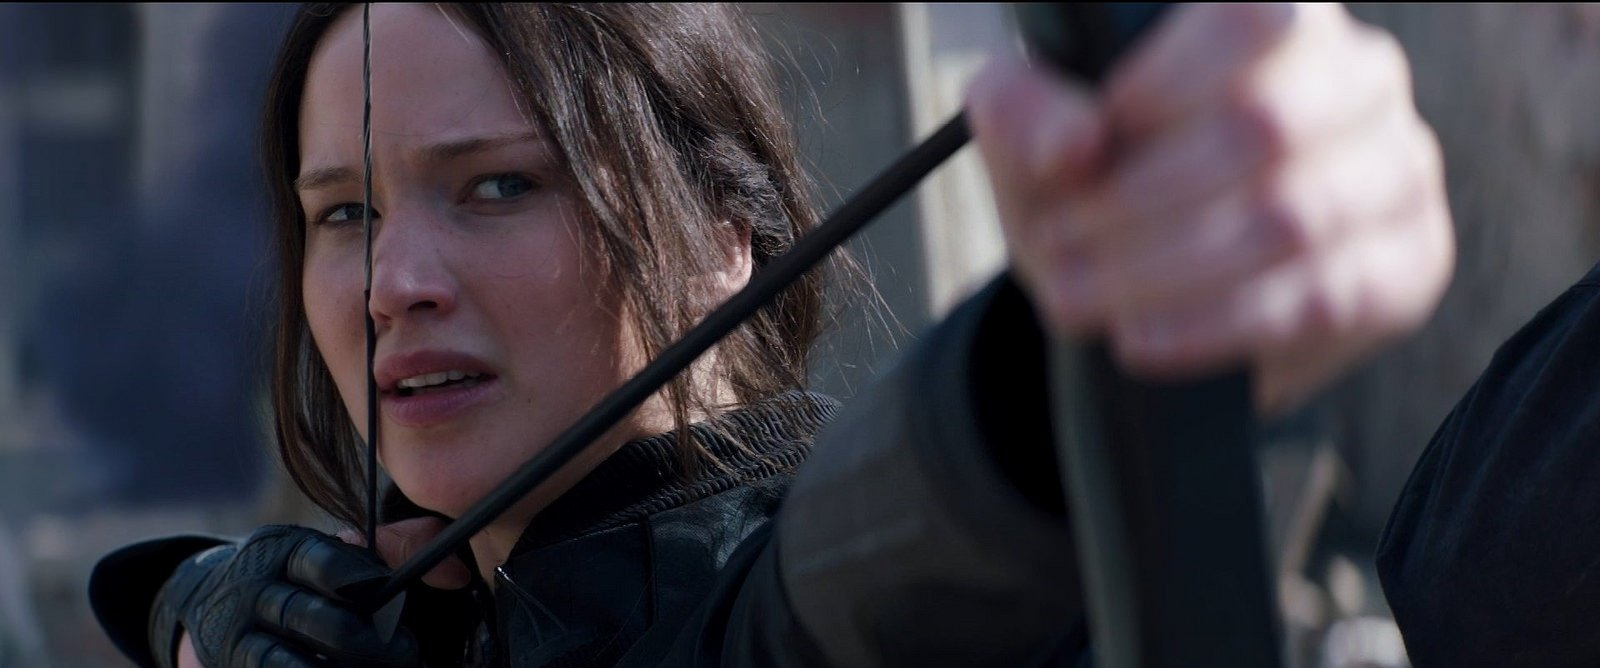 the hunger games self sacrifice That's great i think that katniss changed soooo much between the start of the hunger games and the end of mockingjay one, she was kind of a depressed person at the end of mockingjay.